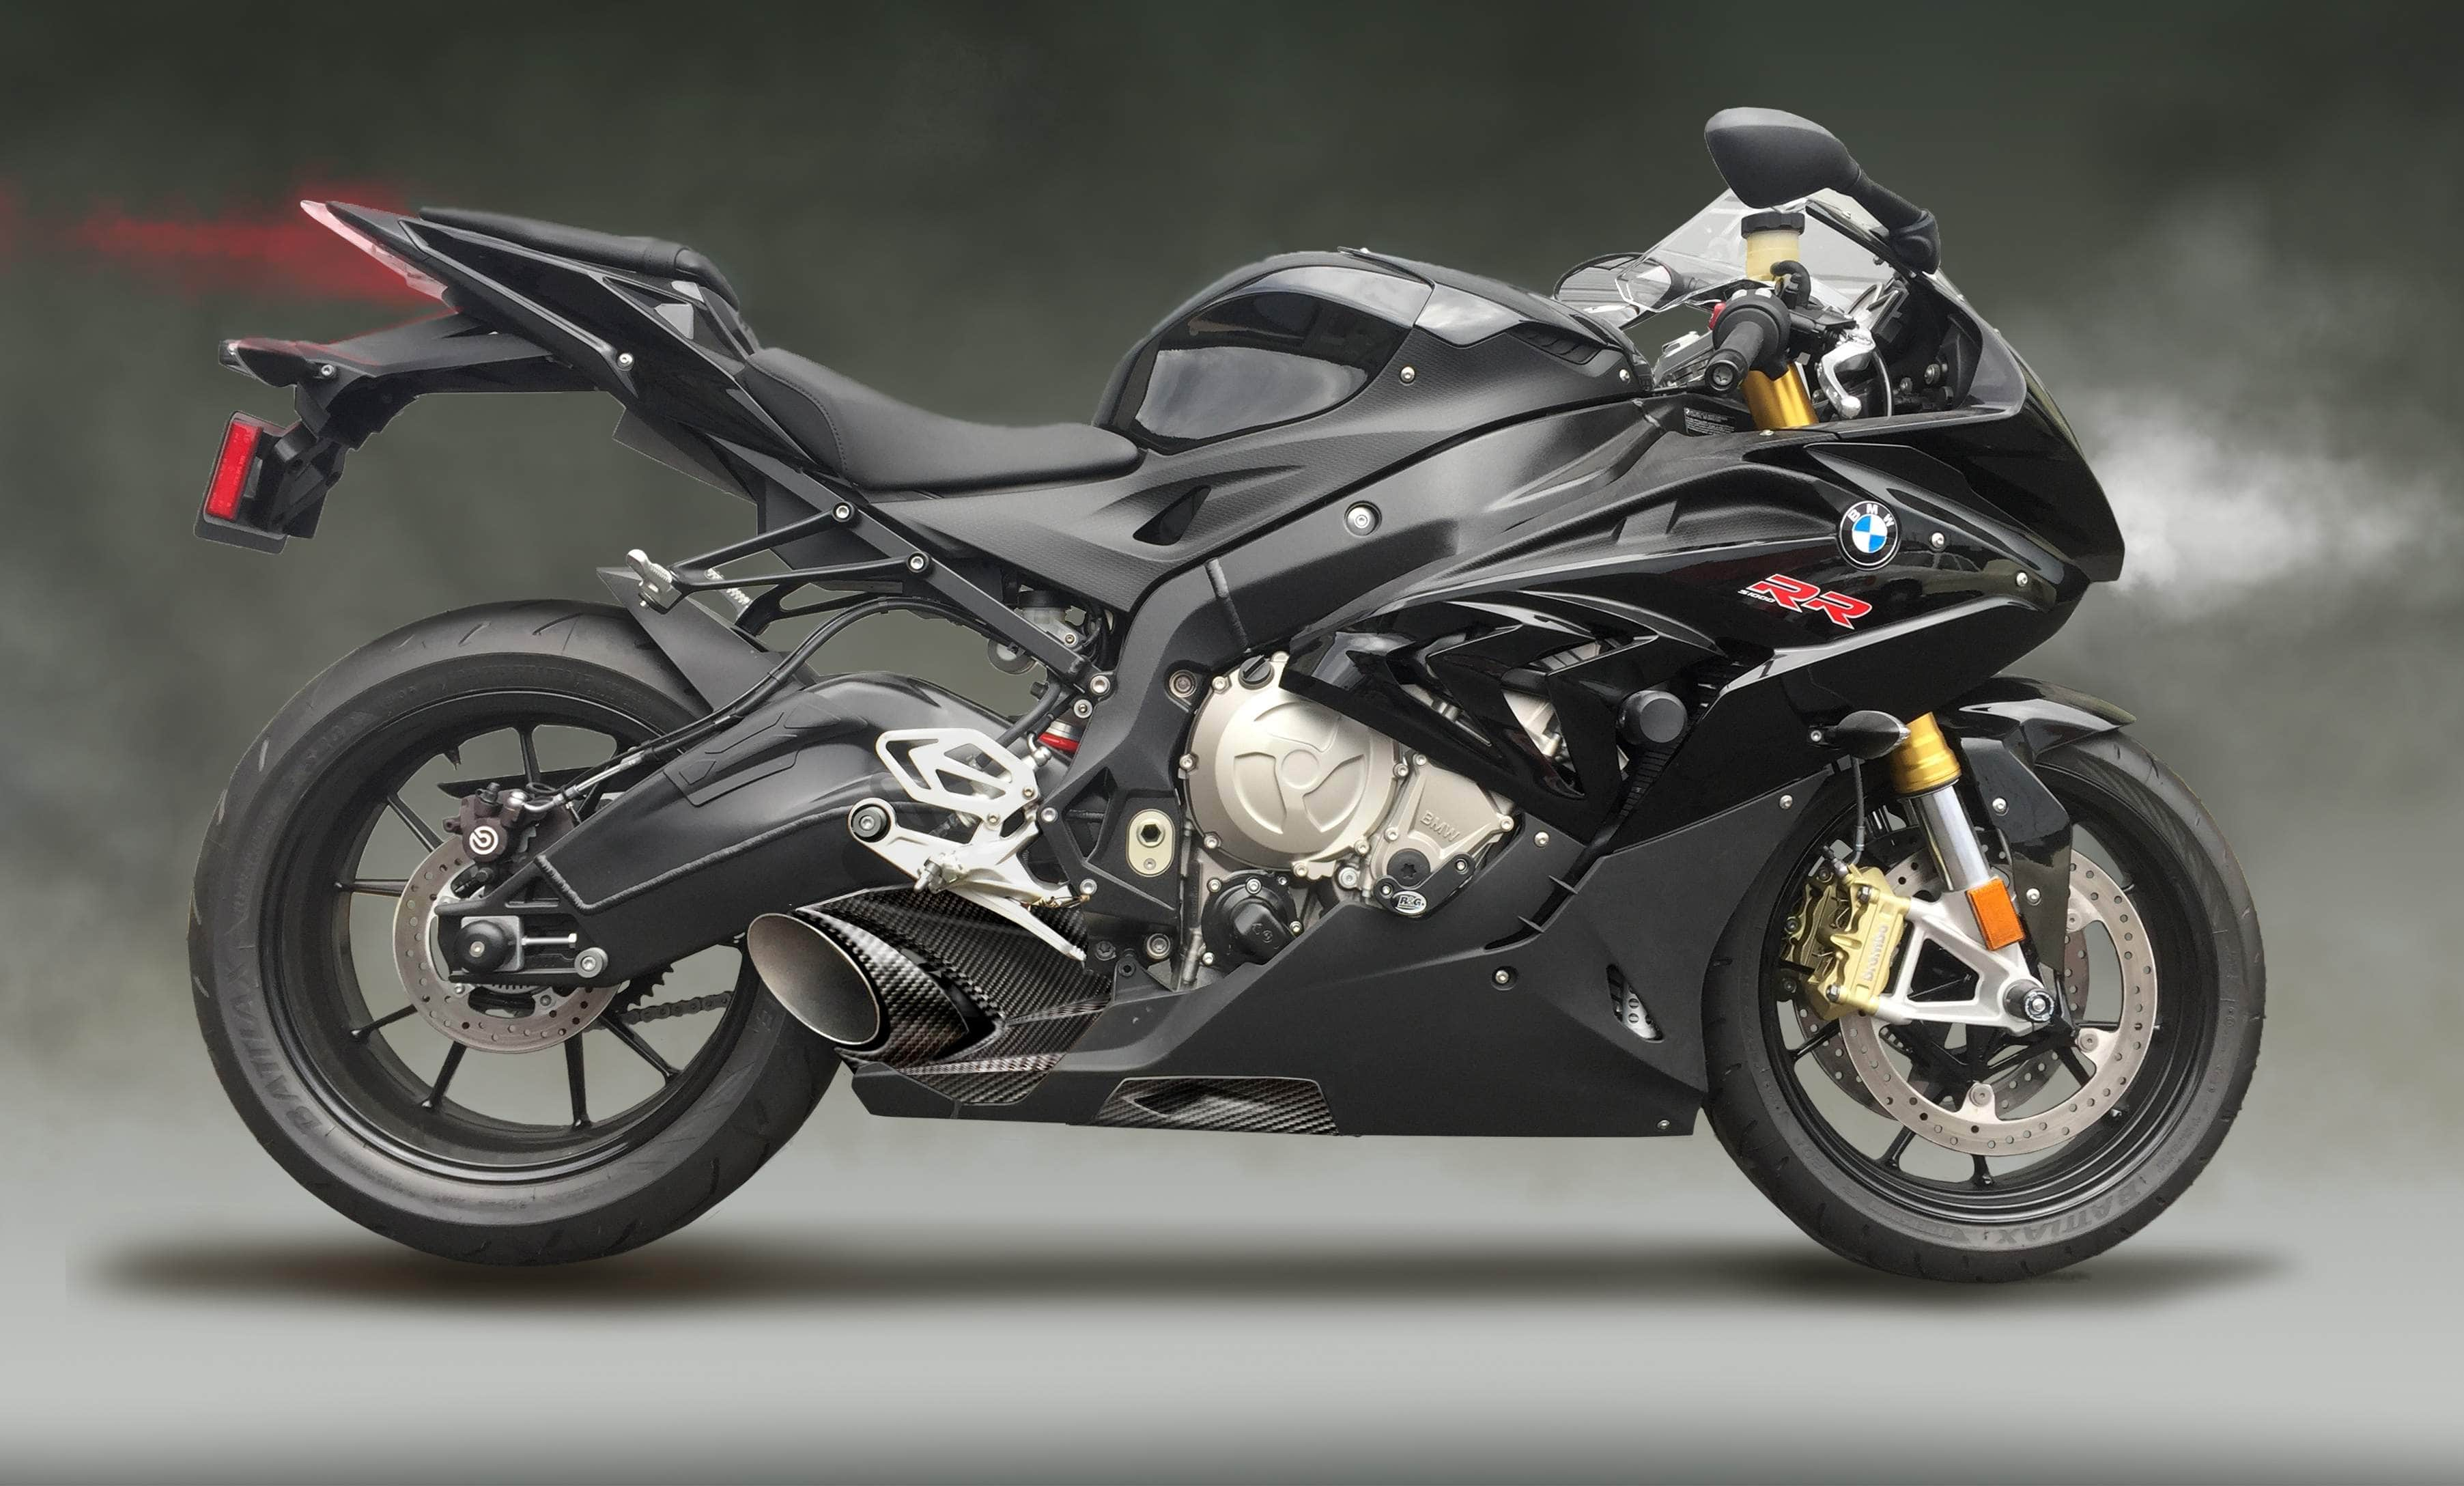 Bmw S 1000 Rr 2020 Wallpapers Wallpaper Cave